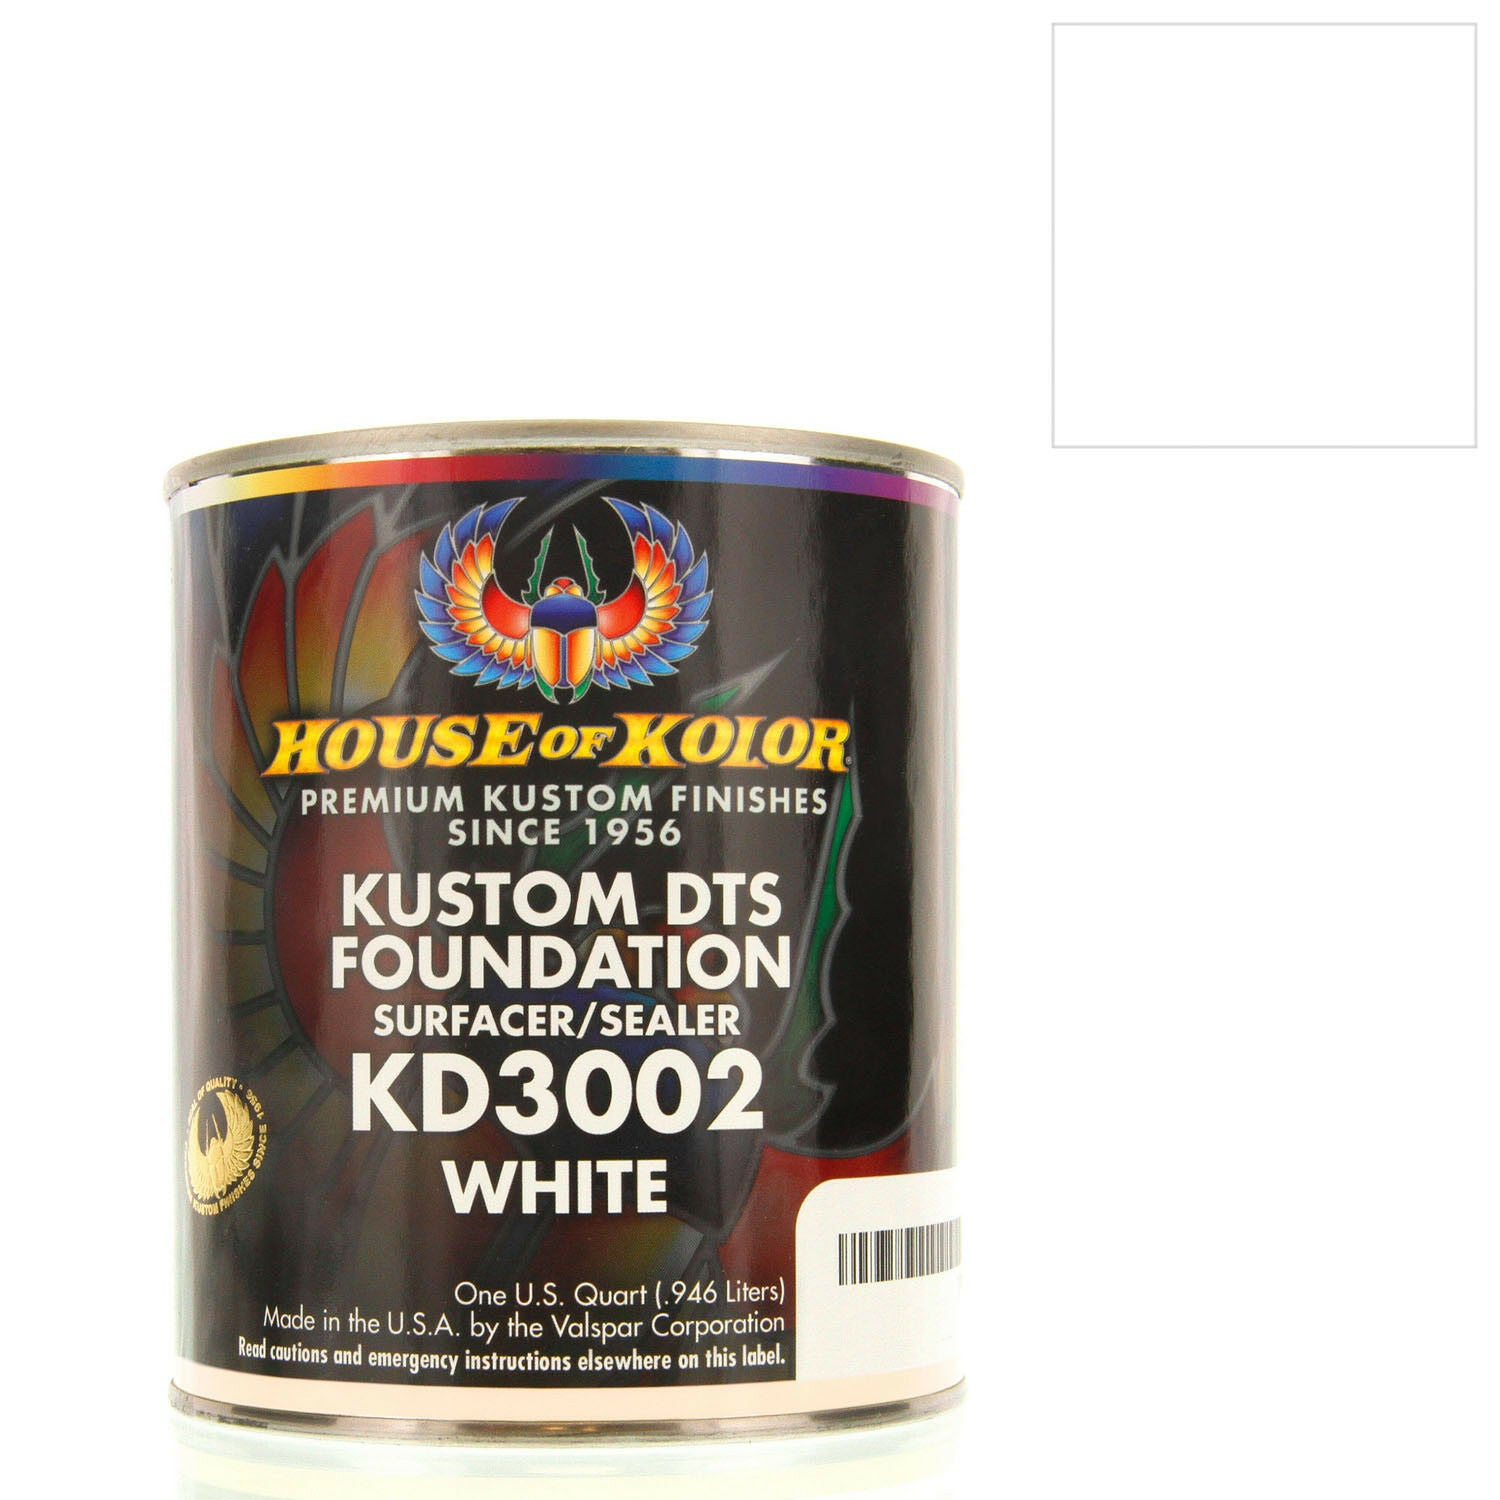 White - Custom Dts Foundation Surfacer Sealer Epoxy Primer, 1 Gallon House of Kolor